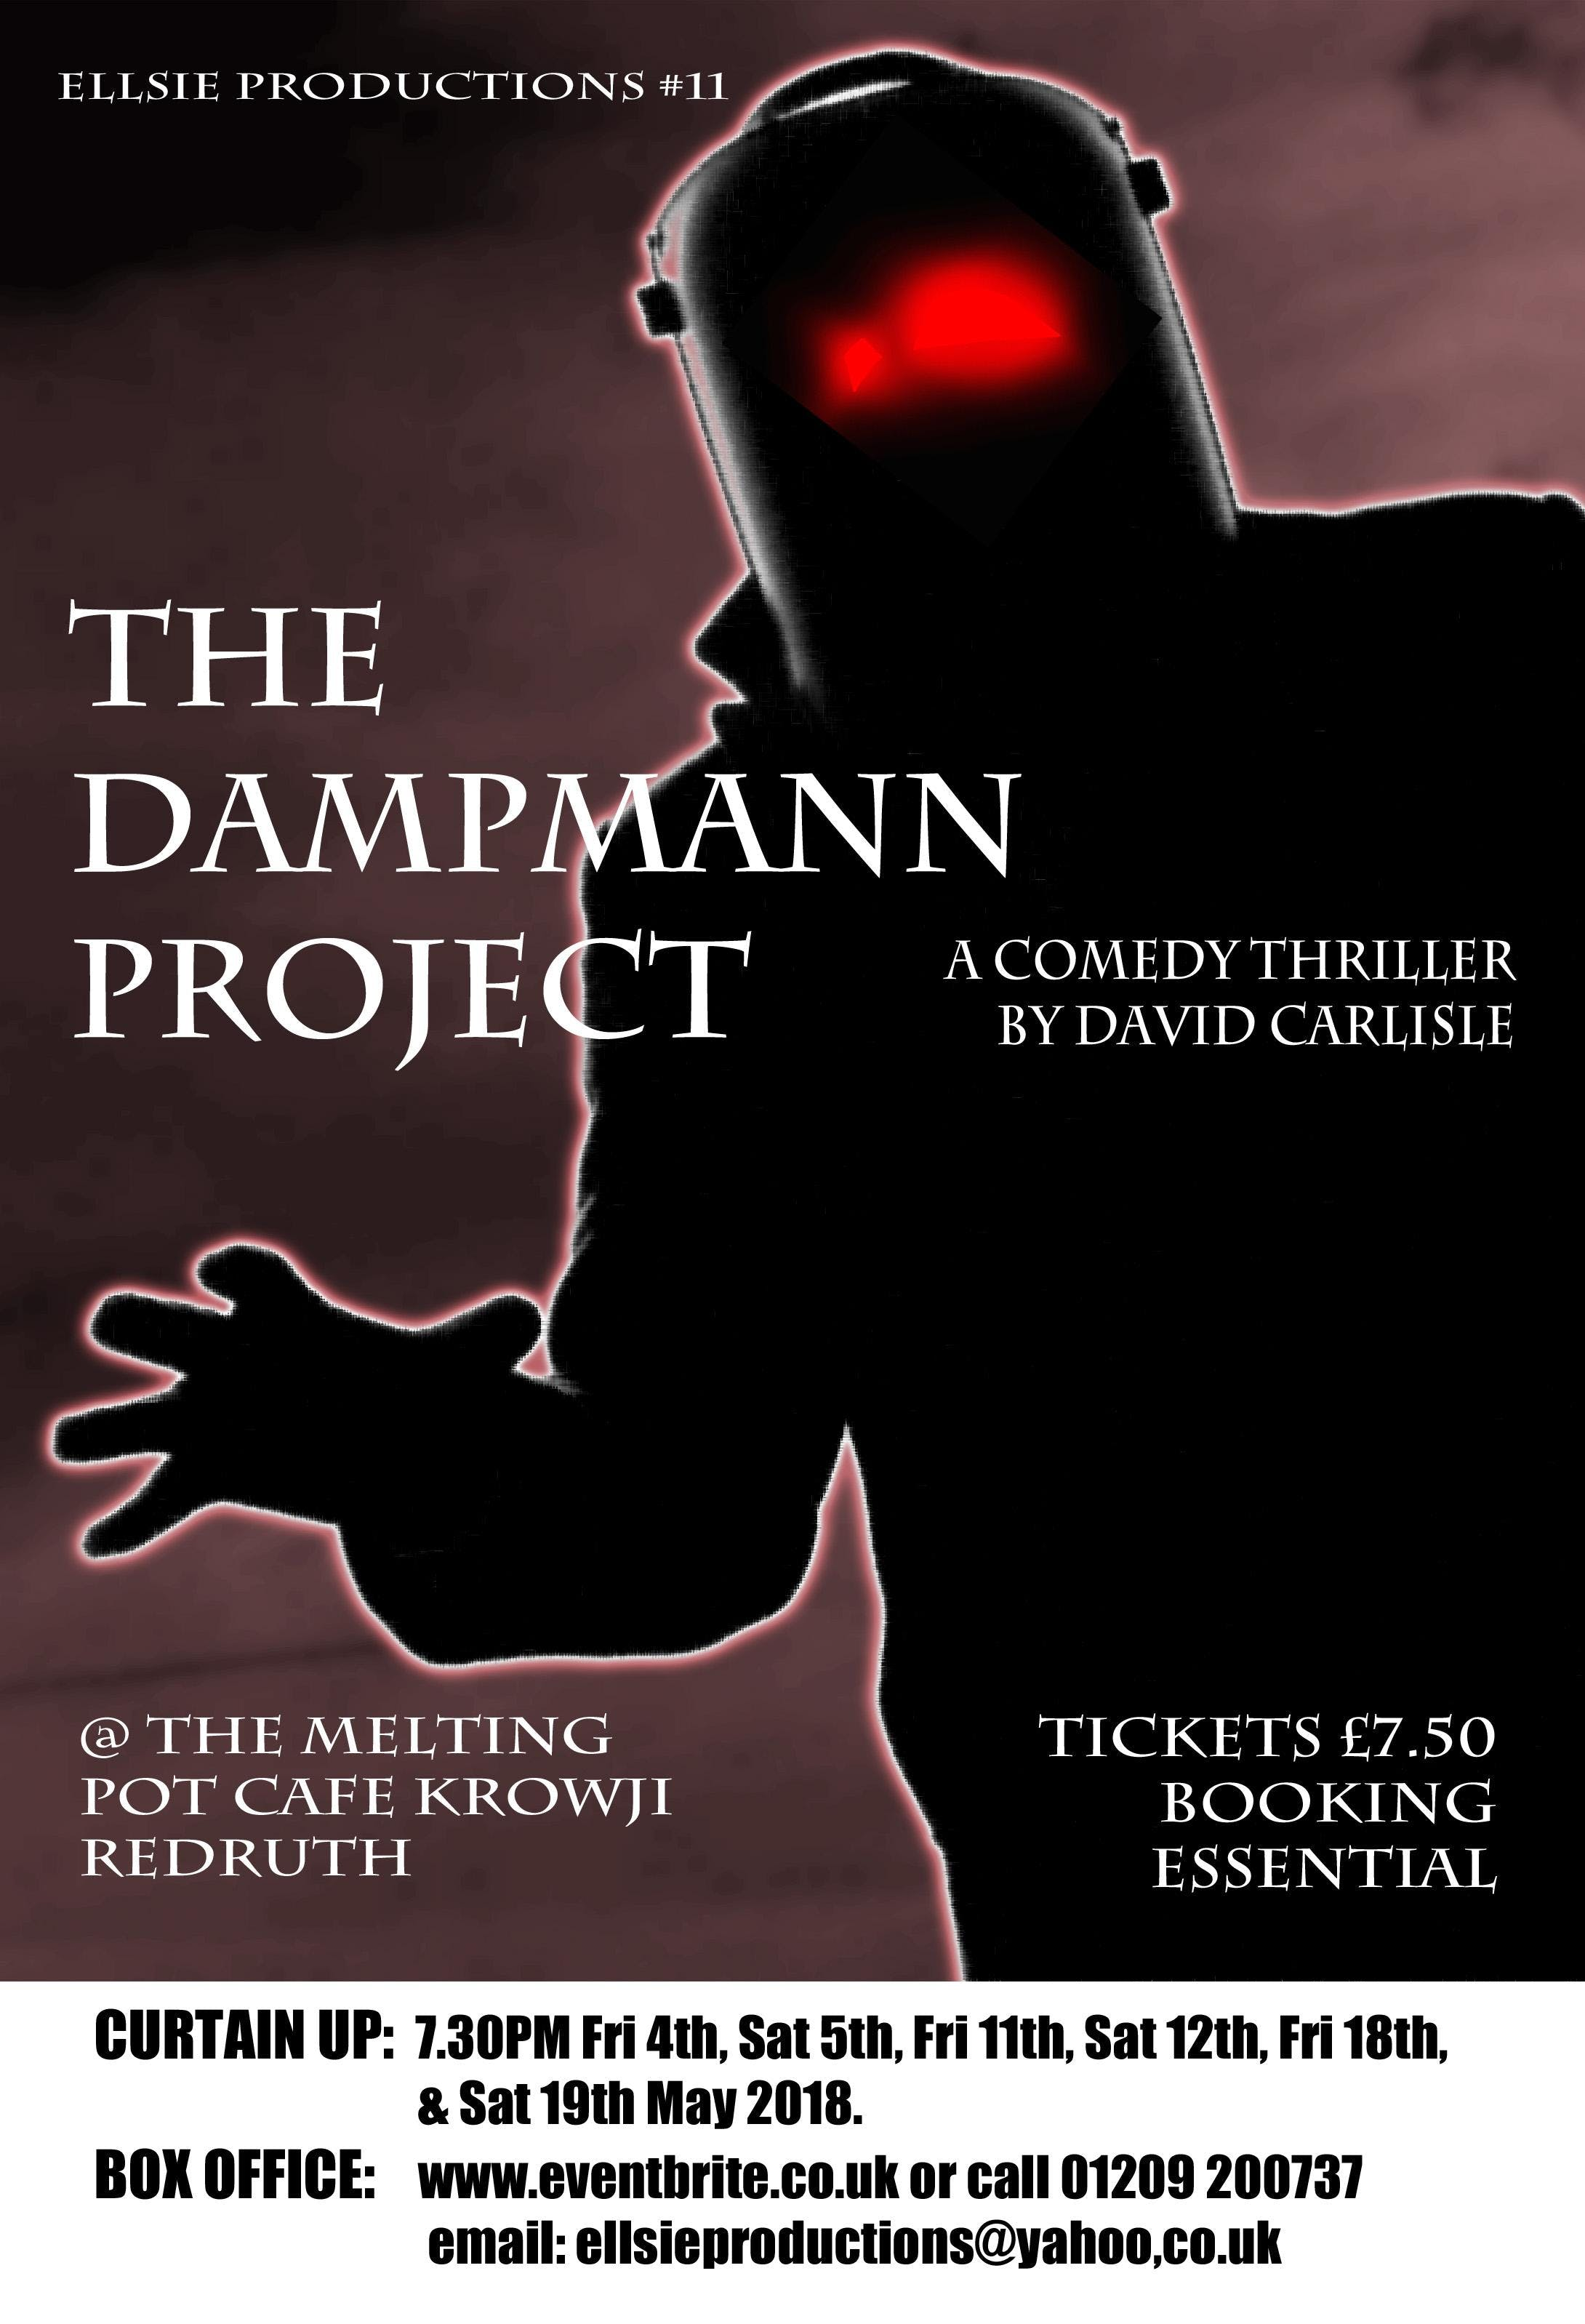 The Dampmann Project, a comedy thriller.